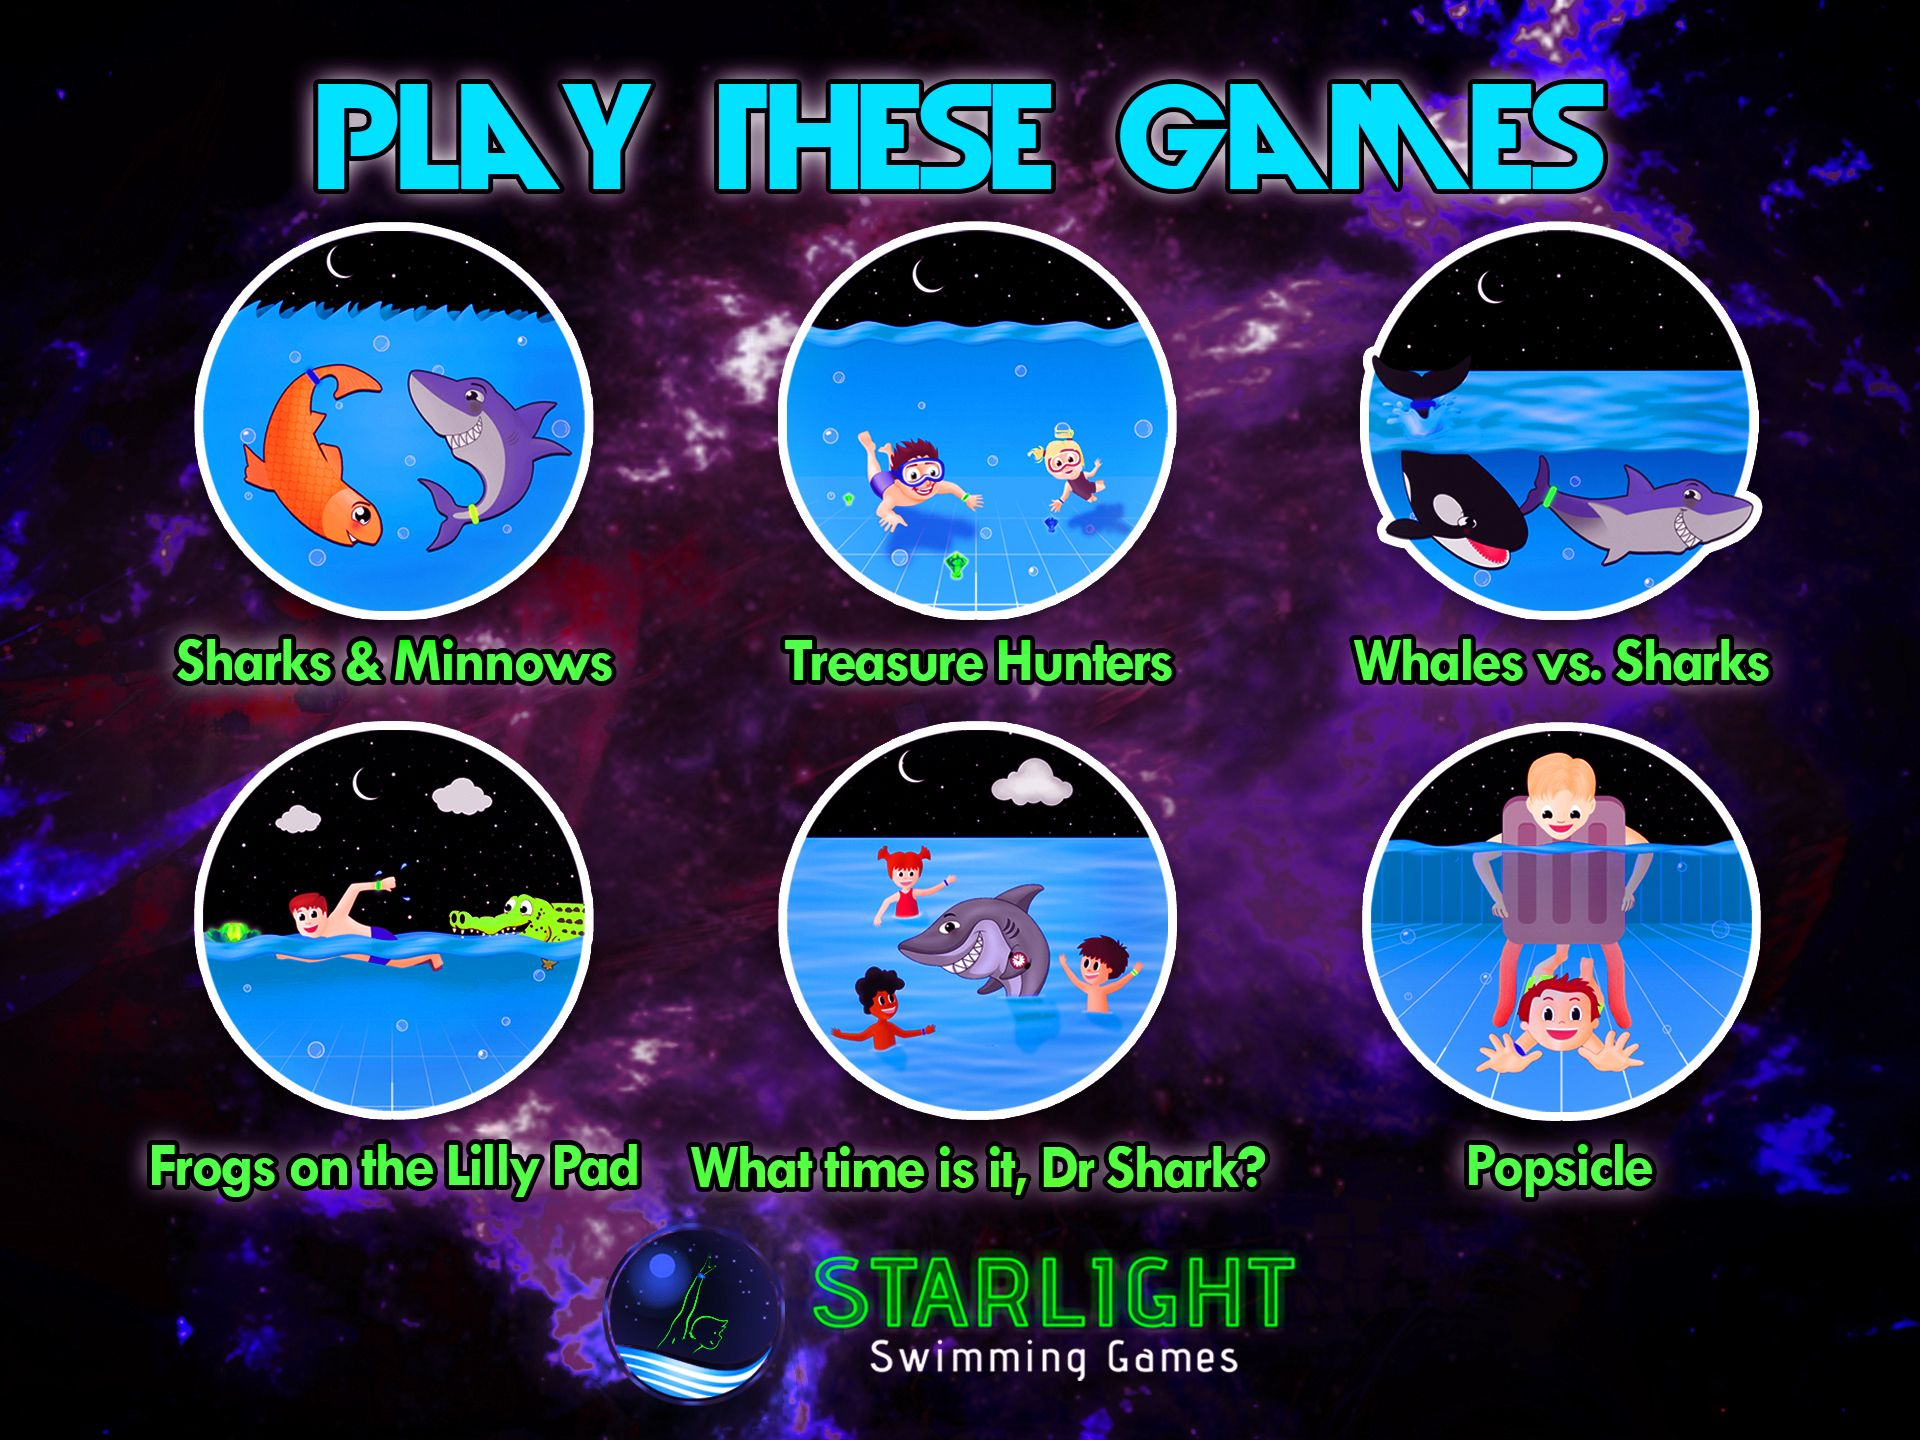 Make Your Swimming Pool Much More Fun With Waterproof Glow In The Dark Game Pieces And Multiple Swimming Games With Pool Party Games Swimming Games Pool Party